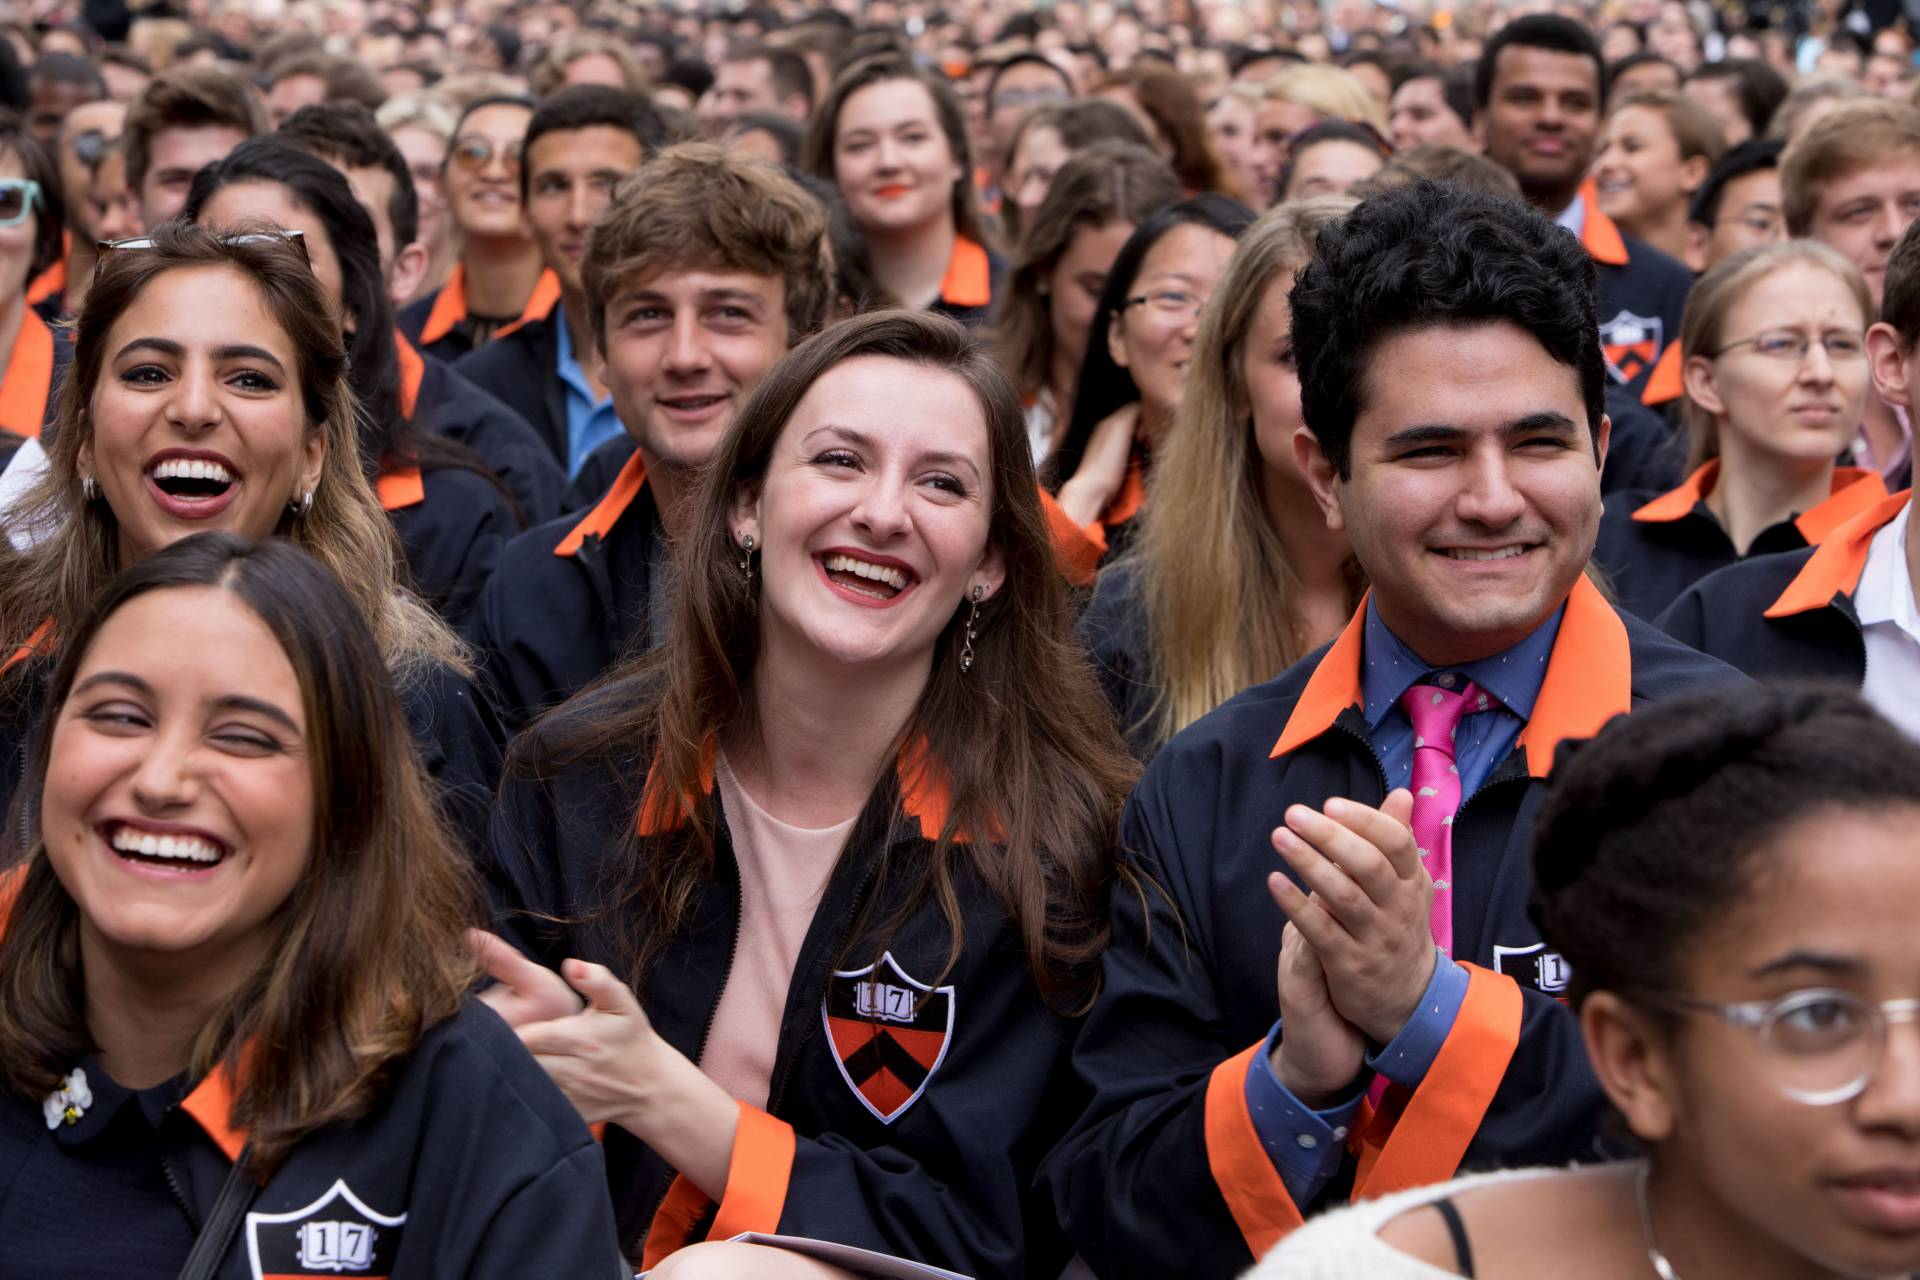 Students laughing during Class Day 2017 ceremony